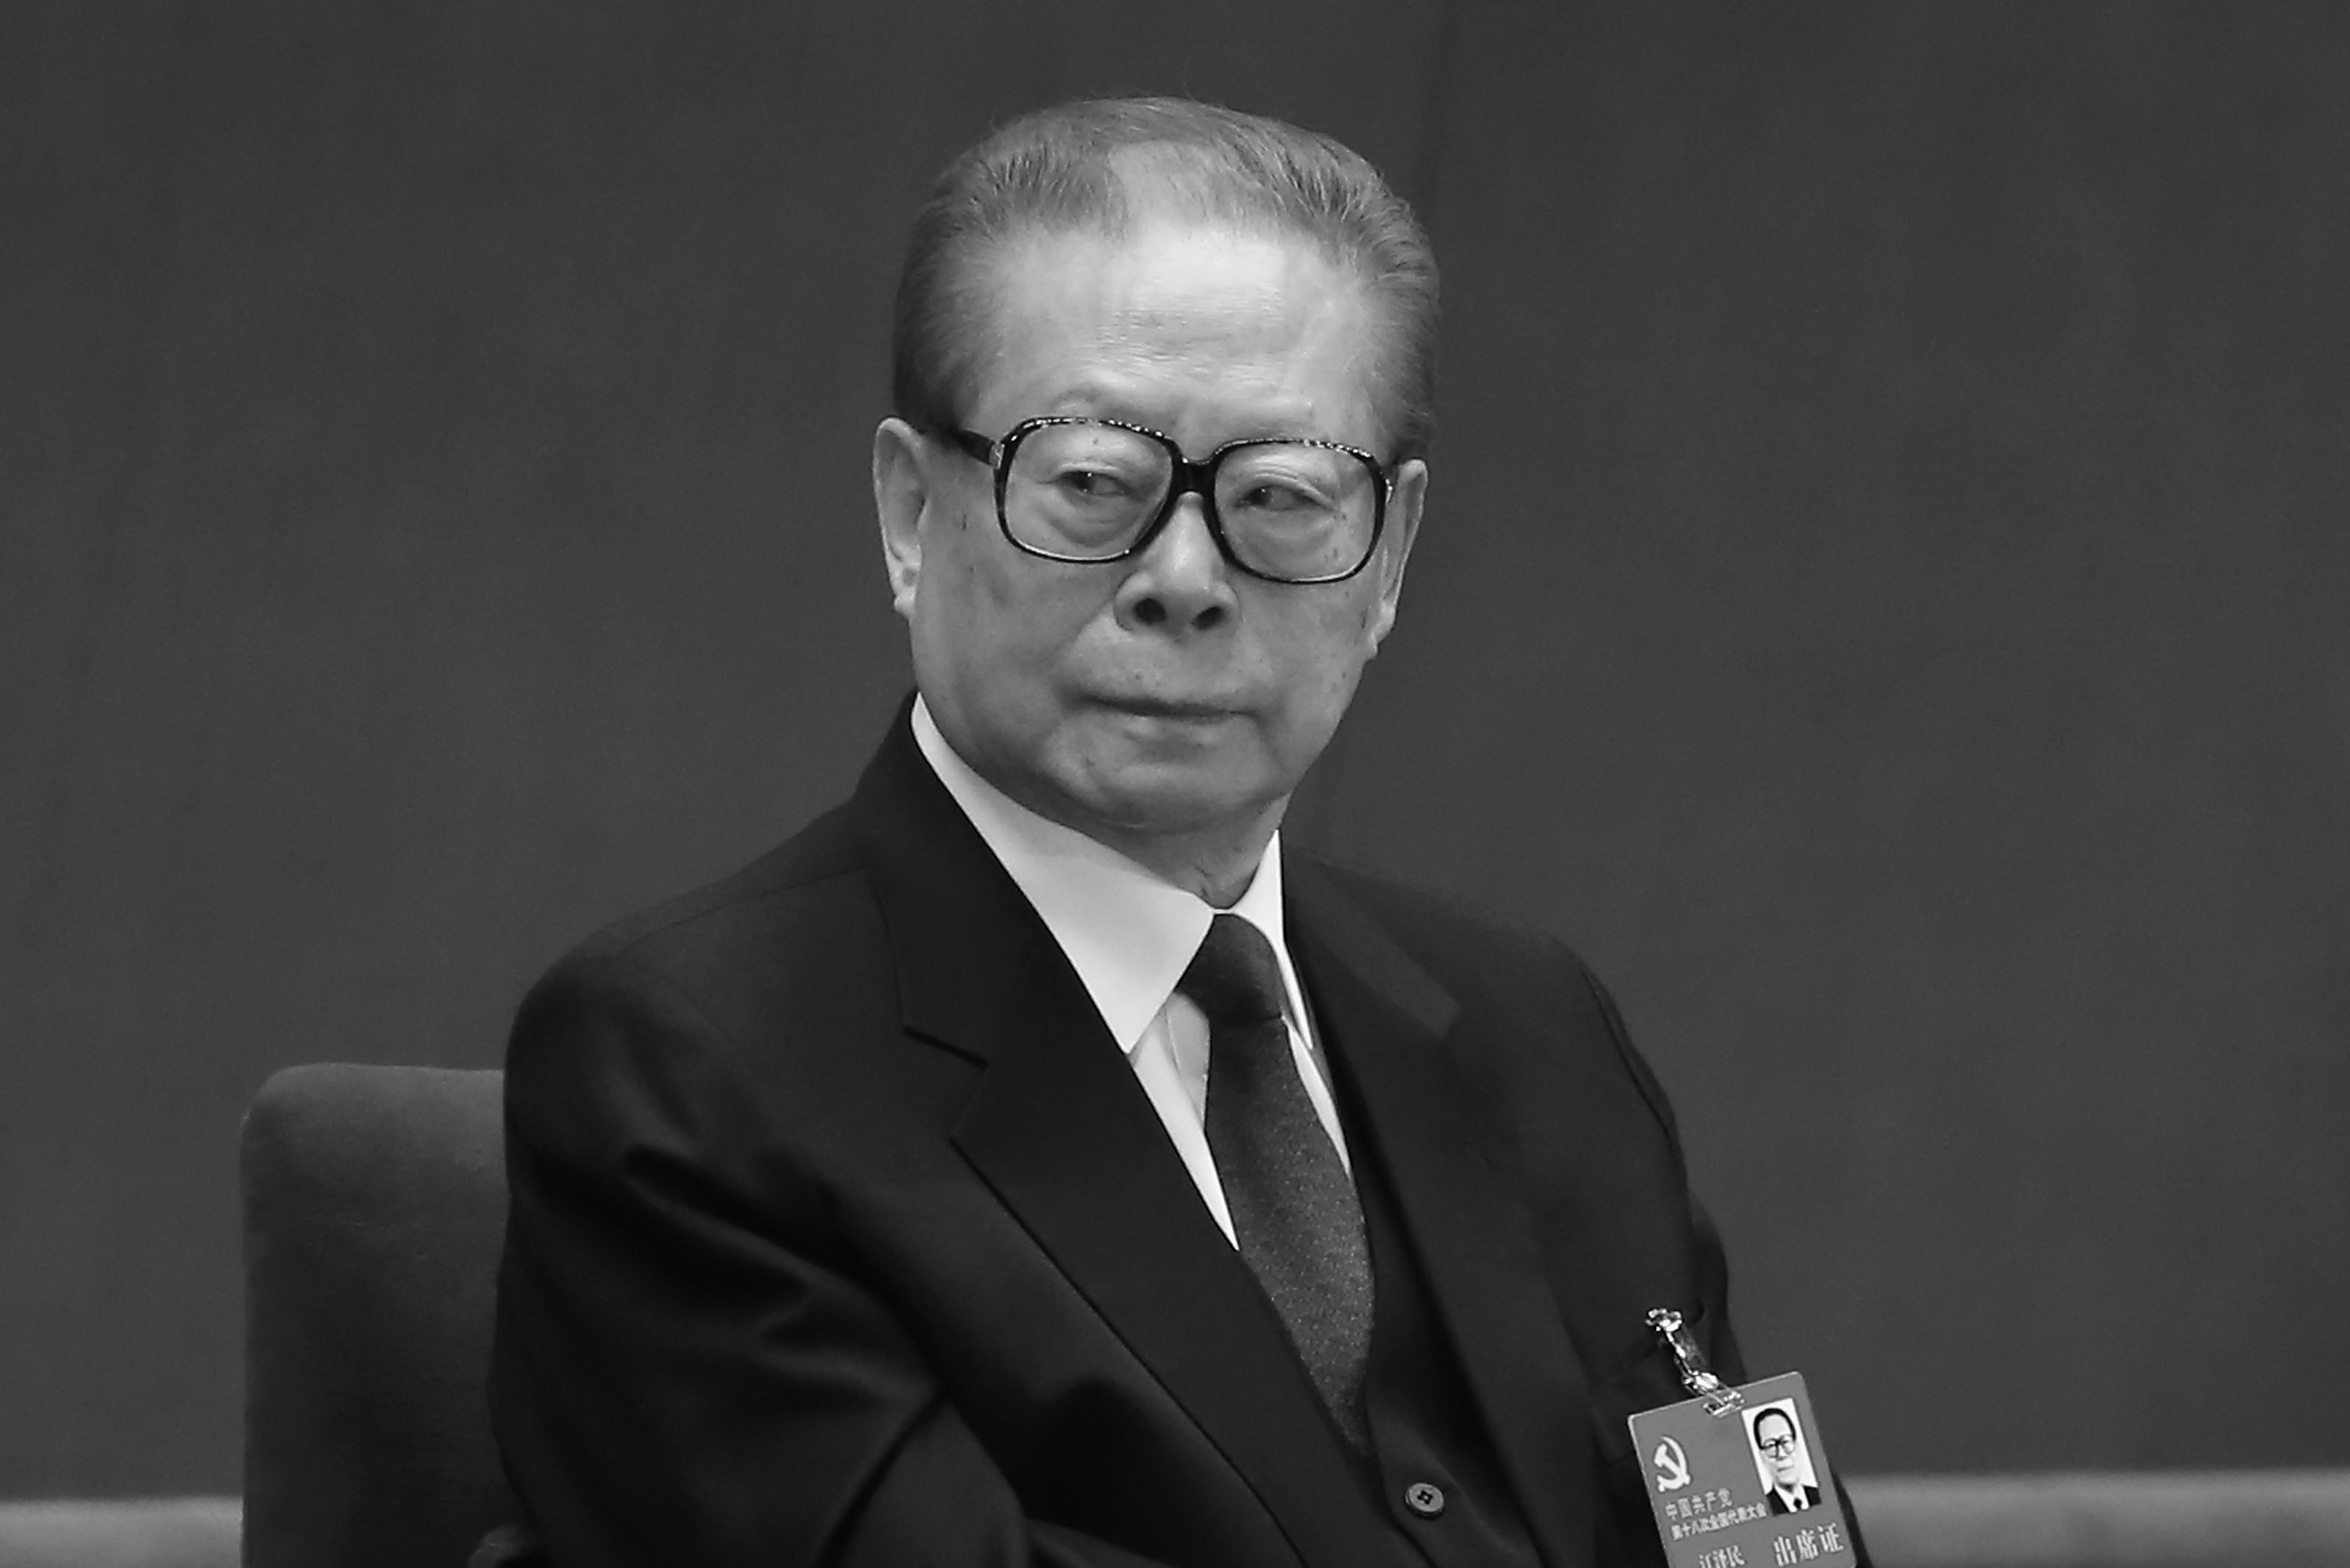 Former Chinese leader Jiang Zemin at the Great Hall of the People  in Beijing on Nov. 8, 2012. (Feng Li/Getty Images)